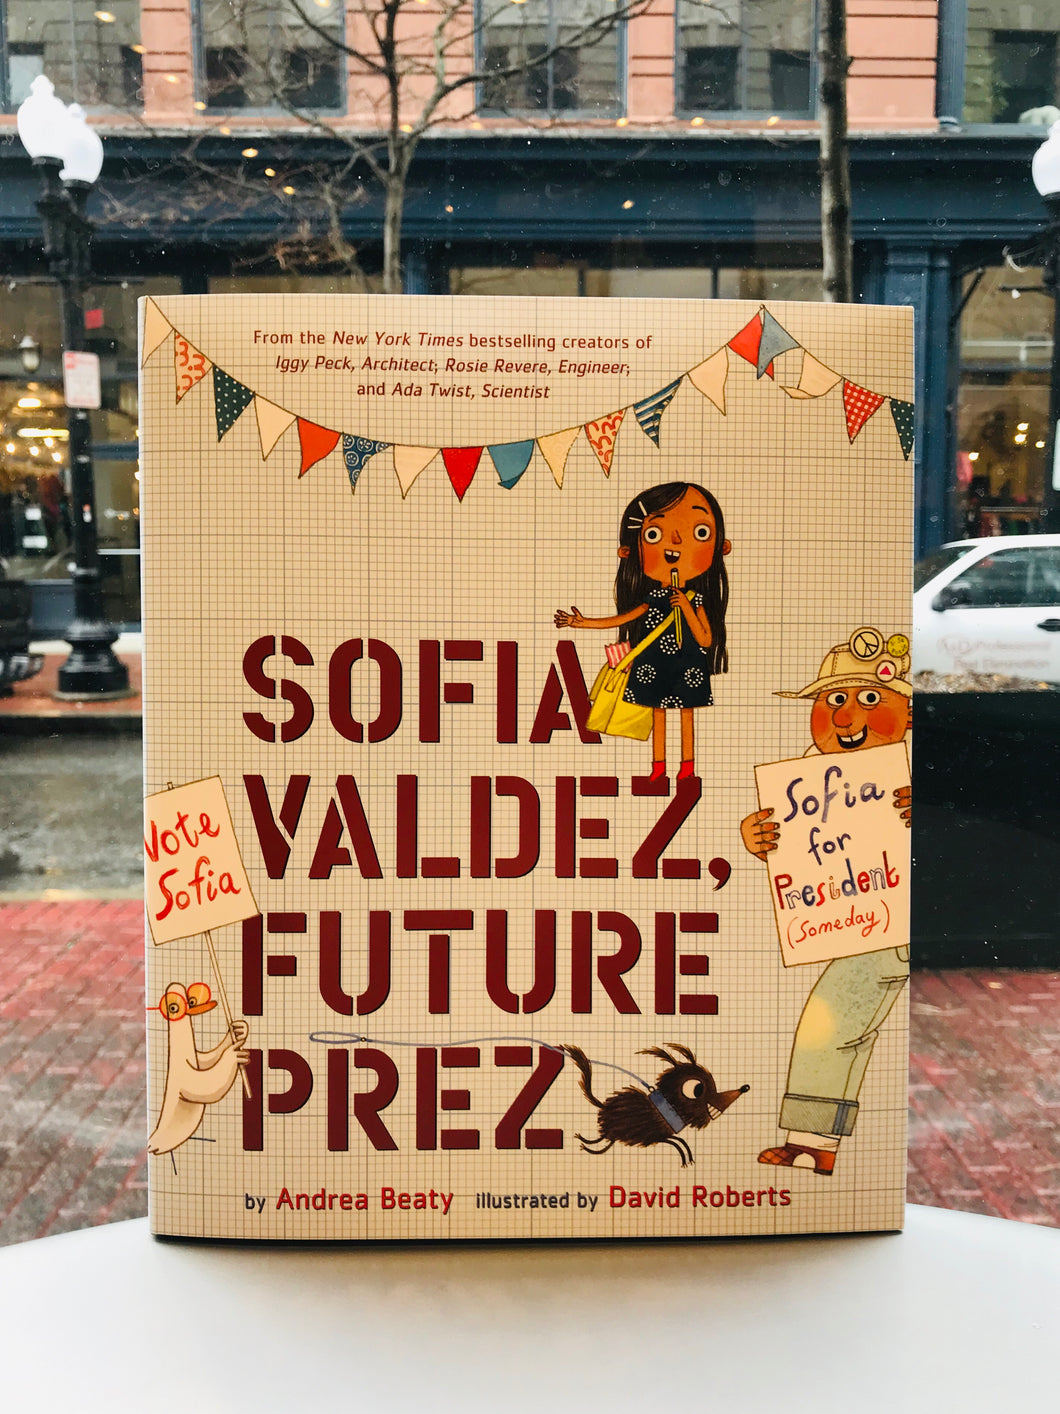 Sofia Valdez, Future Prez, by Andrea Beaty. Illustrated by David Roberts